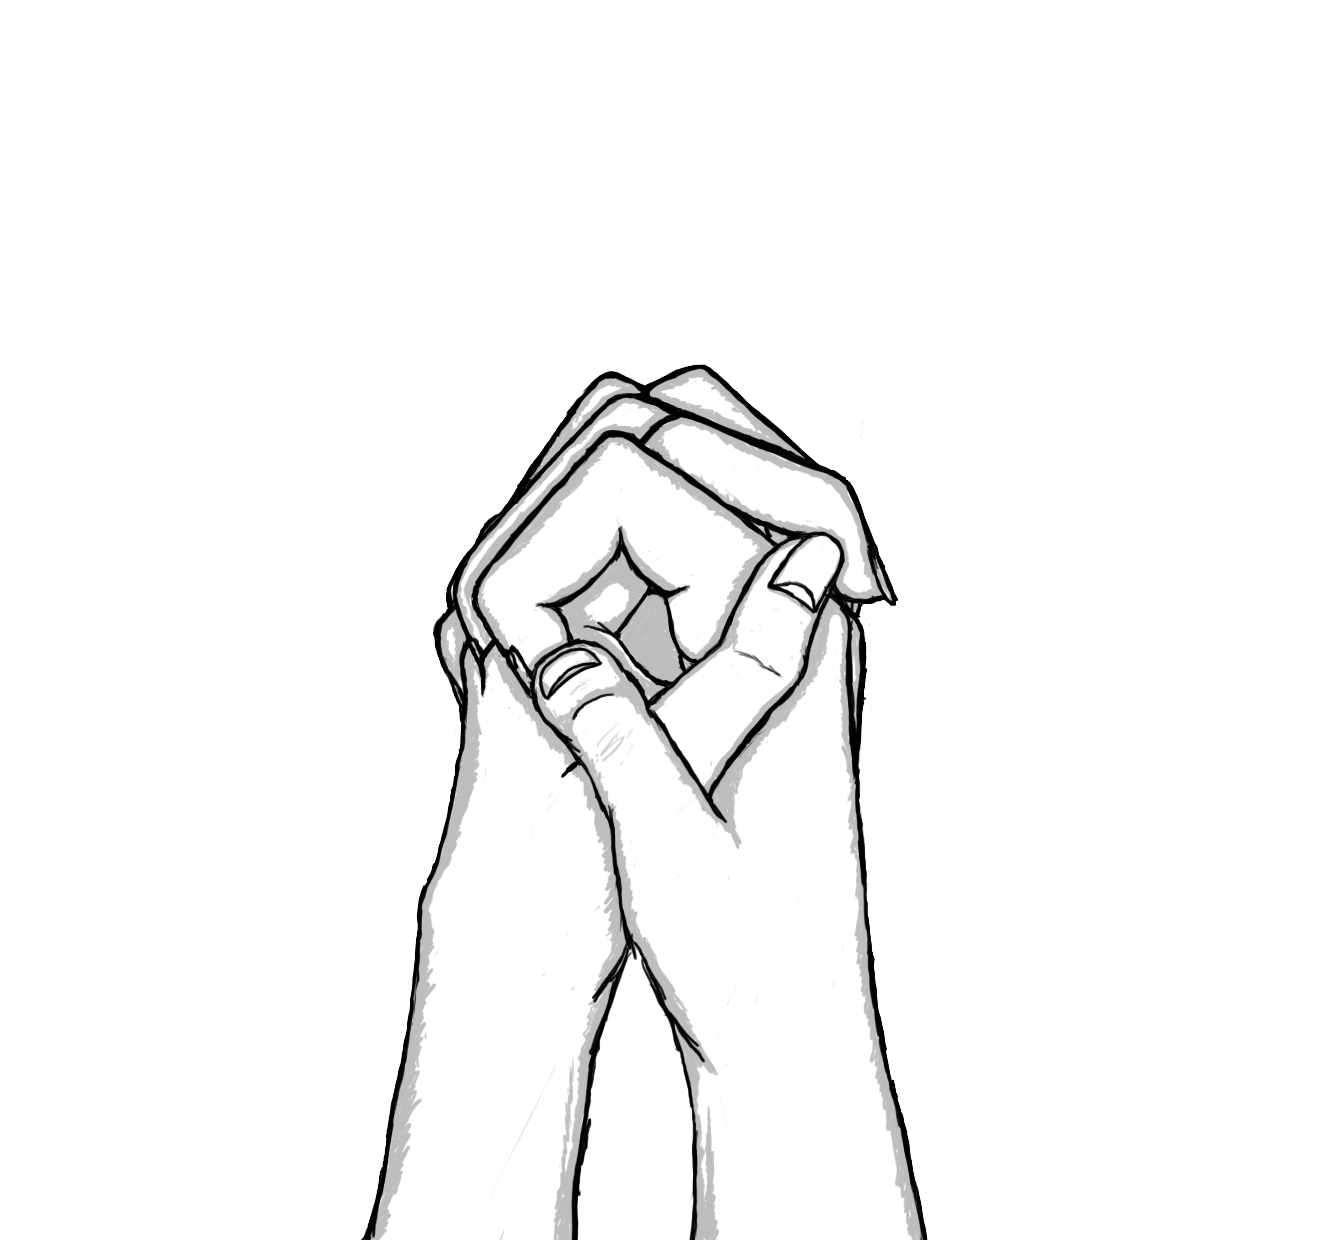 1320x1240 Drawing Of People Holding Hands Sketches Of People Holding Hands